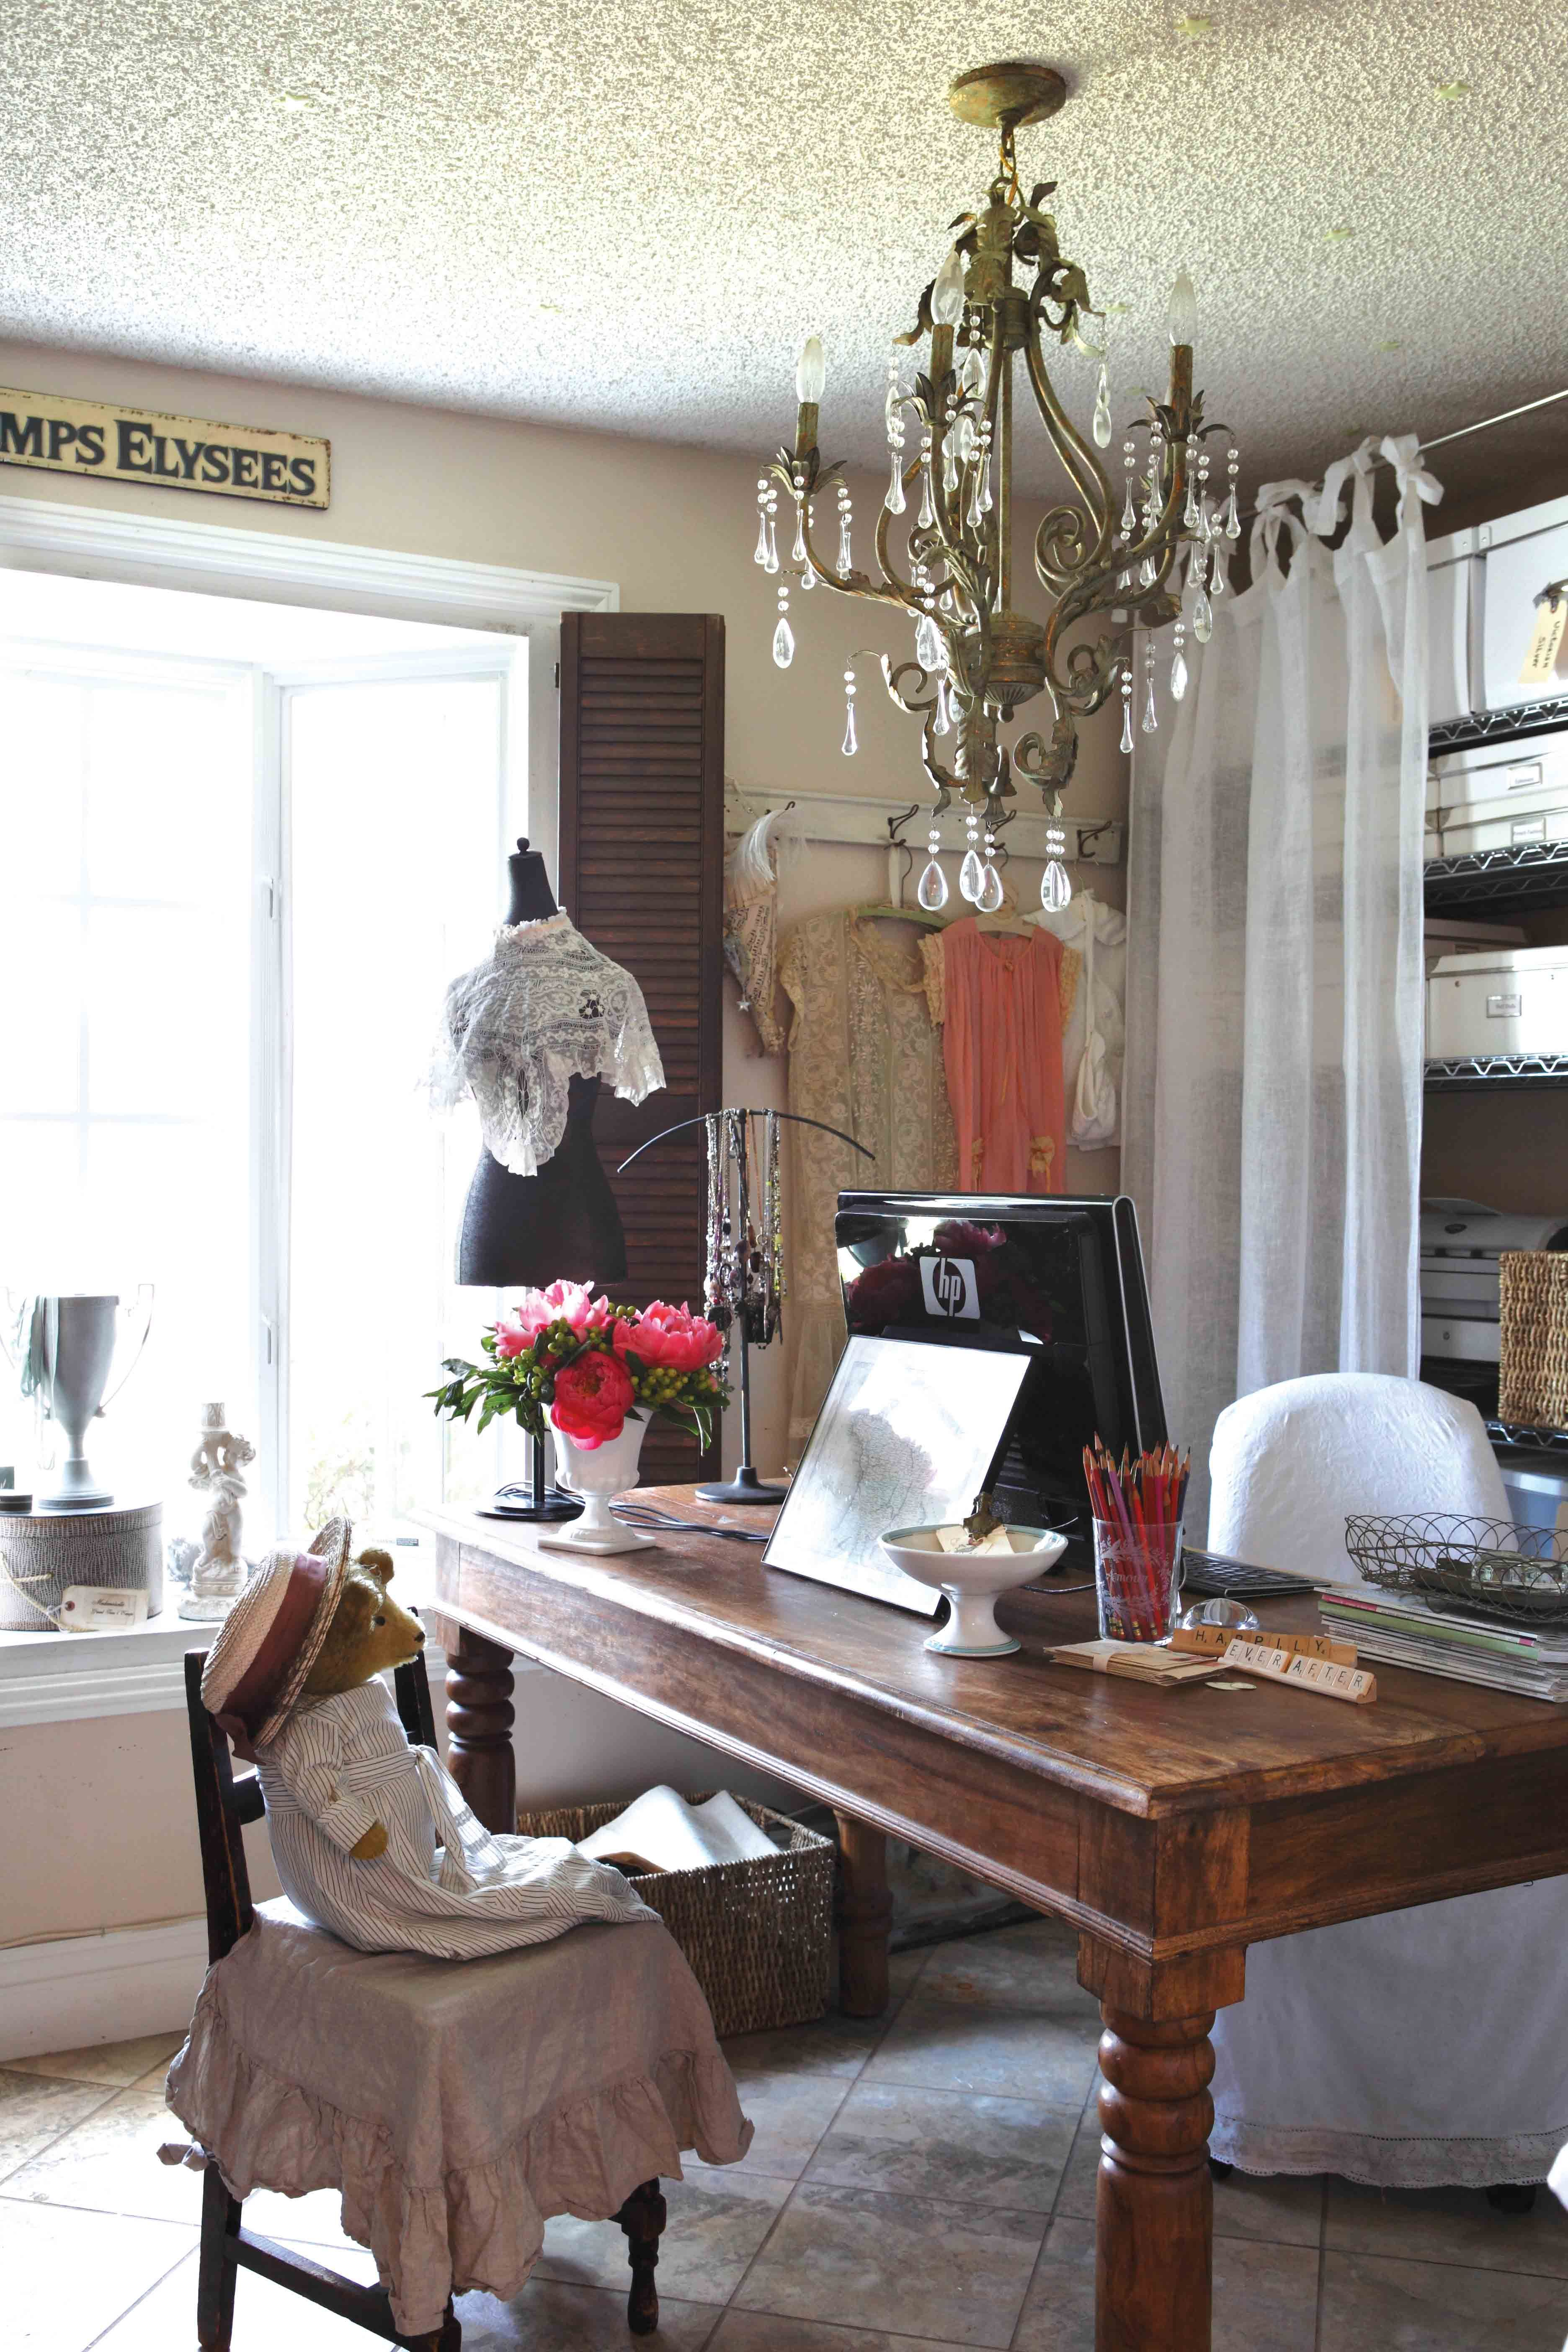 Pamper Your Home With Improvement Ideas And Tips For More Information Visit Image Link